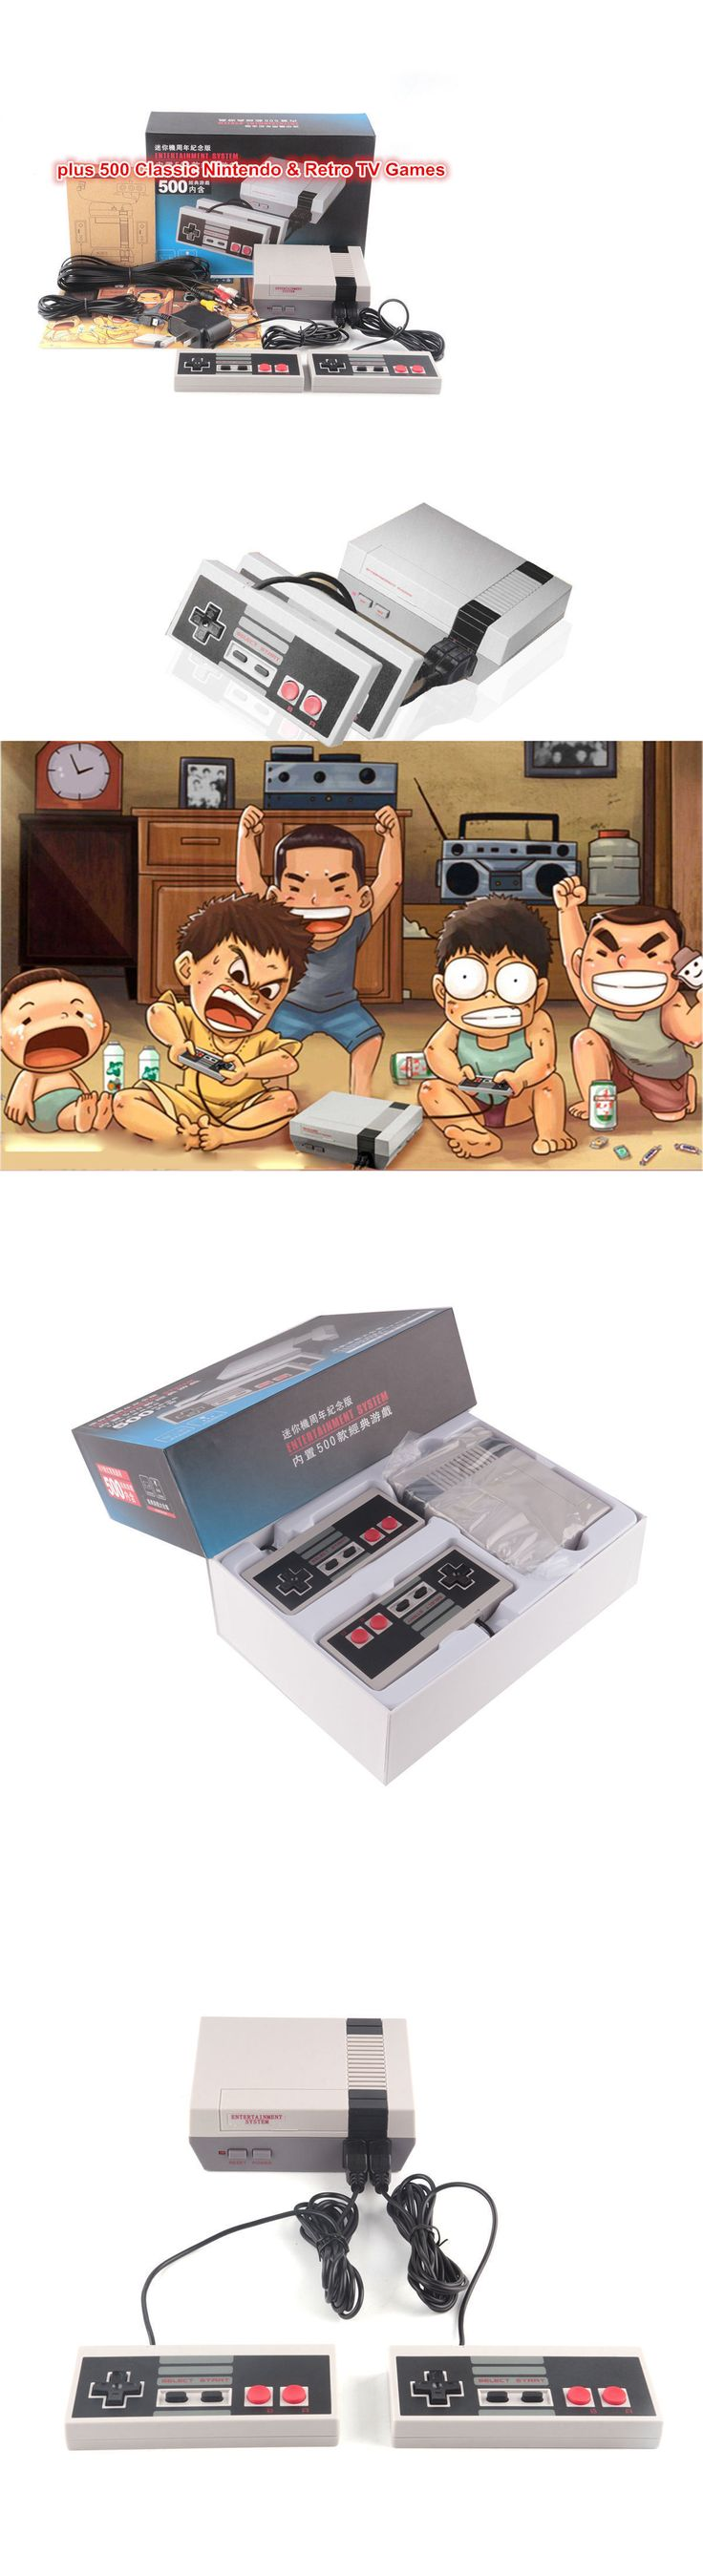 Other Wholesale Toy Lots 26424: New Classic Edition Nes Mini Console Entertainment System +500 Retro Game Ntsc -> BUY IT NOW ONLY: $59.9 on eBay!